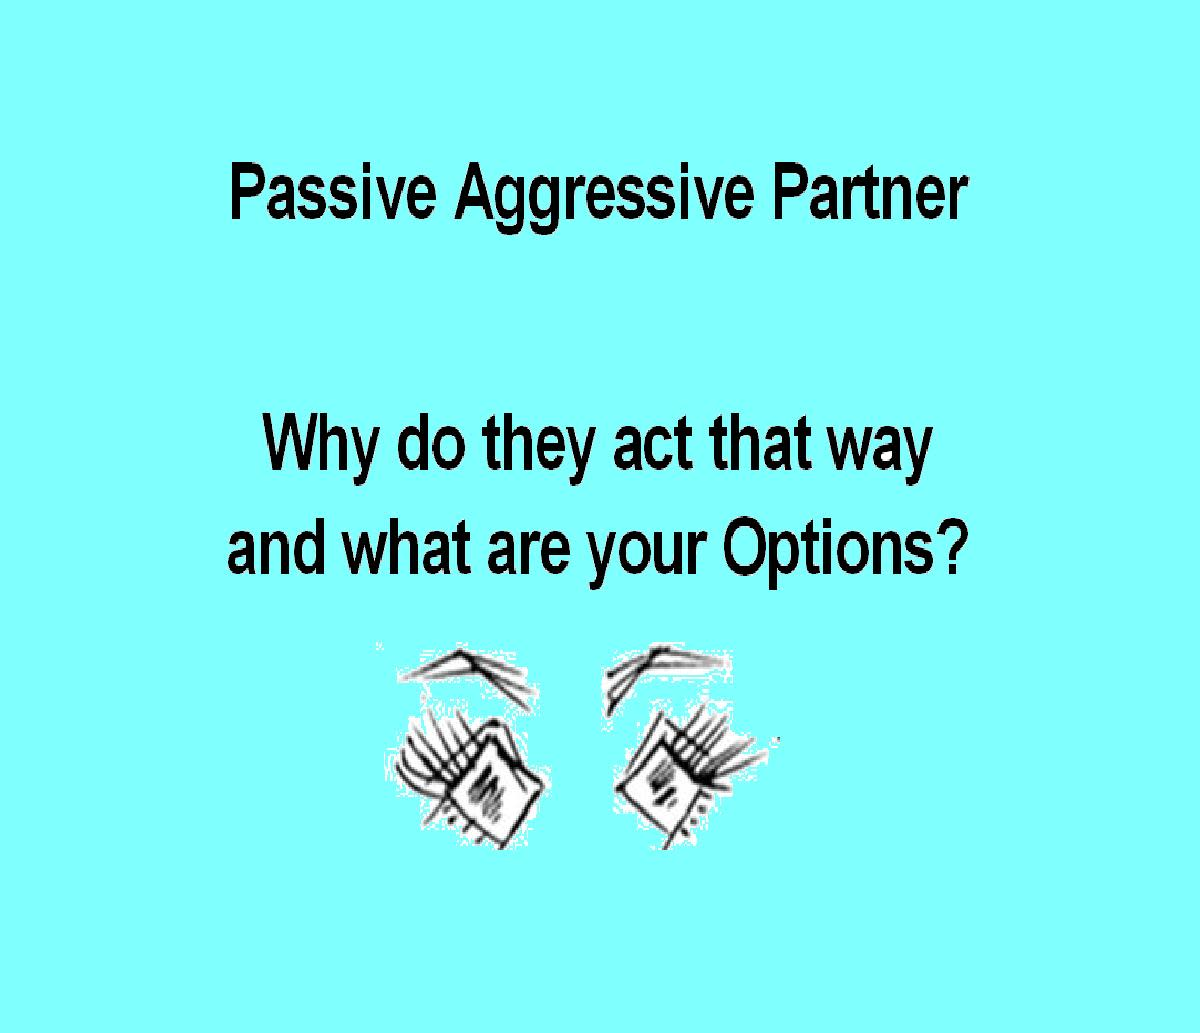 Passive Aggressive Partner - Why do they act that way and what are your Options?